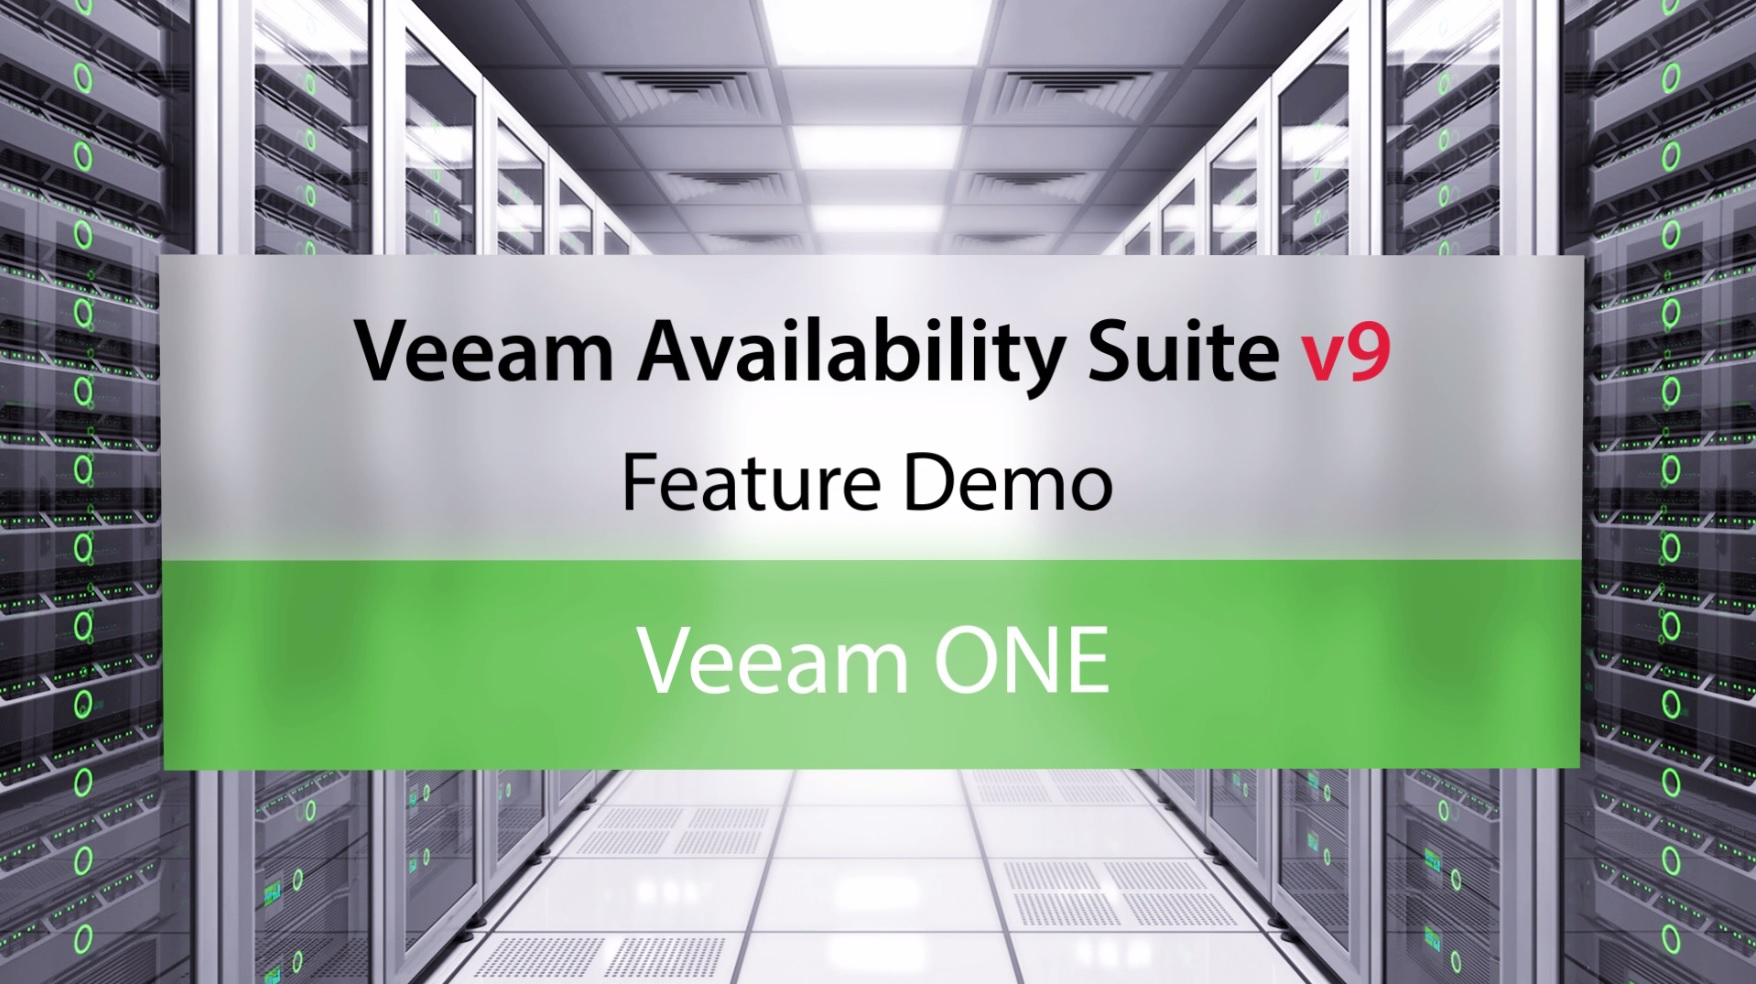 Veeam Availability Suite v9: Veeam ONE